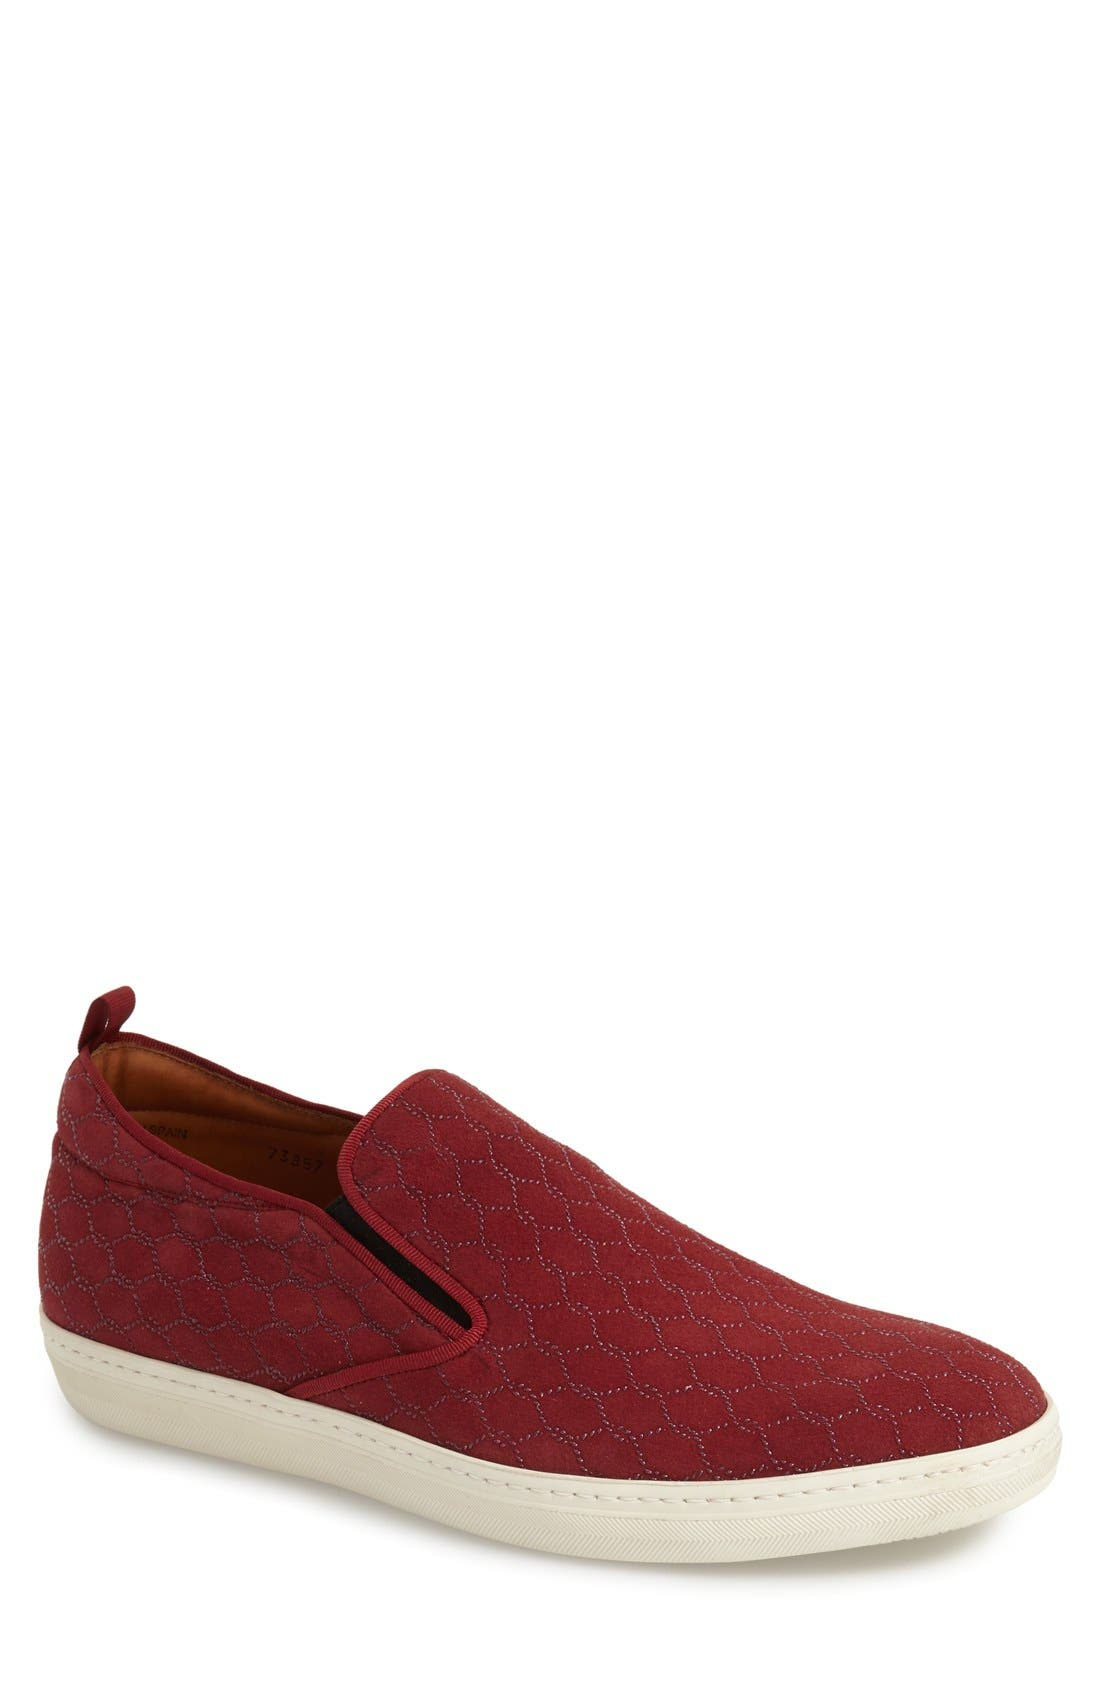 'Moneo' Slip-On,                         Main,                         color, BURGUNDY PATTERNED FABRC